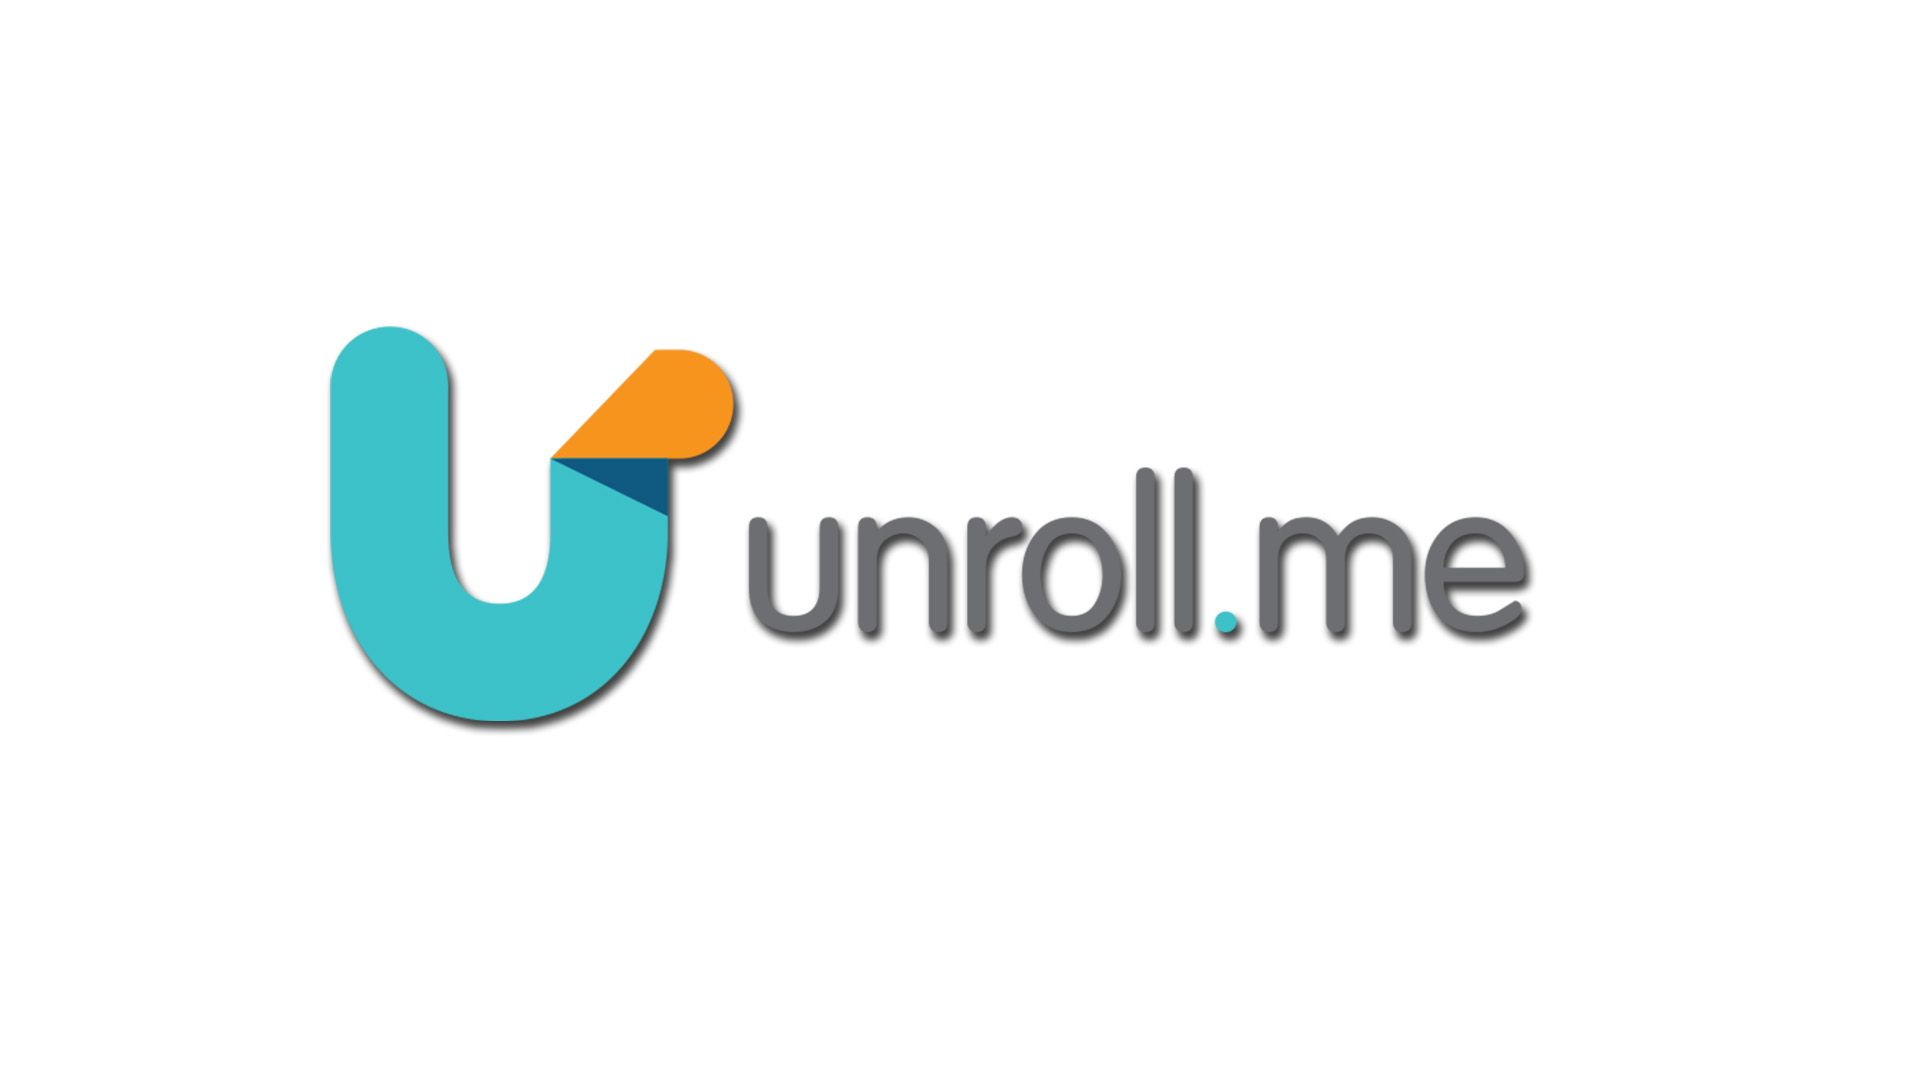 De 0 à 1,3 million d'utilisateurs (unroll.me) #GrowthHacking #WEbMarketing #FormationGrowthHacking #CentreDeFormationFrance #TunnelAARRR #AARRR #SocialMedia #CommunityManagement #SEO #Unrollme #acquisition #newsletter